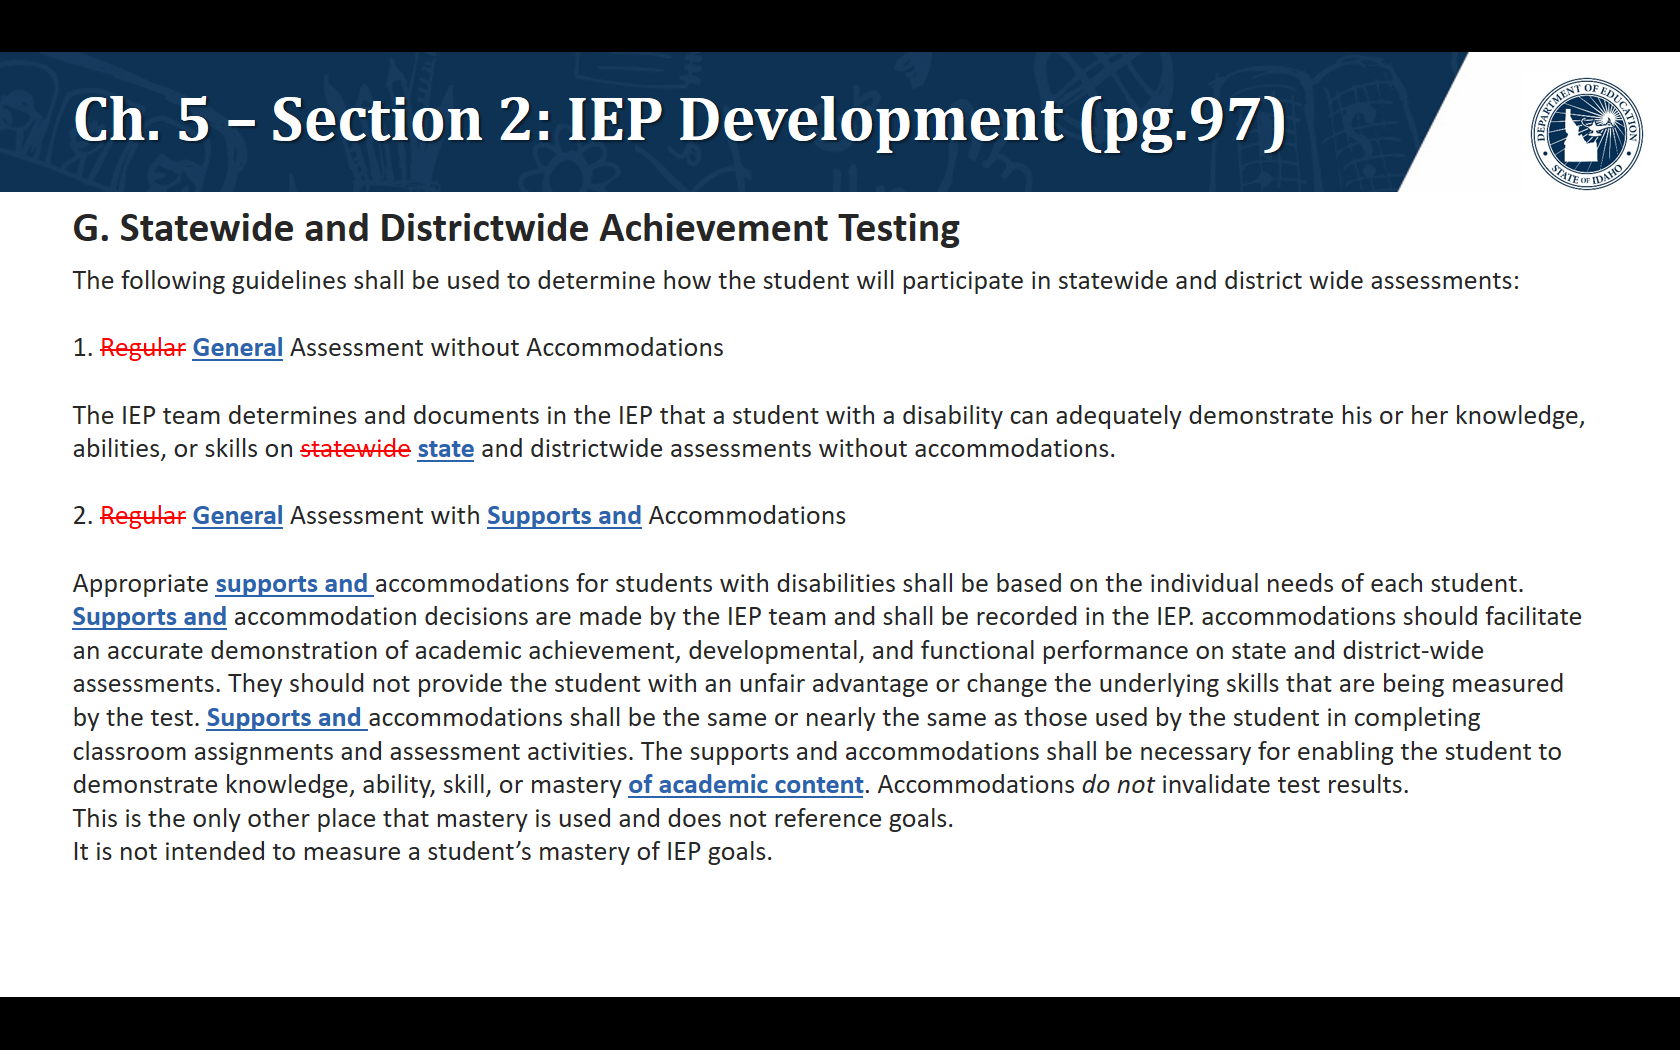 G. Statewide and Districtwide Achievement Testing. The following guidelines shall be used to determine how the student will participate in statewide and district wide assessments:  1. General Assessment without Accommodations  The IEP team determines and documents in the IEP that a student with a disability can adequately demonstrate his or her knowledge, abilities, or skills on state and districtwide assessments without accommodations.  2. General Assessment with Supports and Accommodations  Appropriate supports and accommodations for students with disabilities shall be based on the individual needs of each student. Supports and accommodation decisions are made by the IEP team and shall be recorded in the IEP. accommodations should facilitate an accurate demonstration of academic achievement, developmental, and functional performance on state and district-wide assessments. They should not provide the student with an unfair advantage or change the underlying skills that are being measured by the test. Supports and accommodations shall be the same or nearly the same as those used by the student in completing classroom assignments and assessment activities. The supports and accommodations shall be necessary for enabling the student to demonstrate knowledge, ability, skill, or masteryof academic content. Accommodations do not invalidate test results. This is the only other place that mastery is used and does not reference goals. It is not intended to measure a student's mastery of IEP goals.